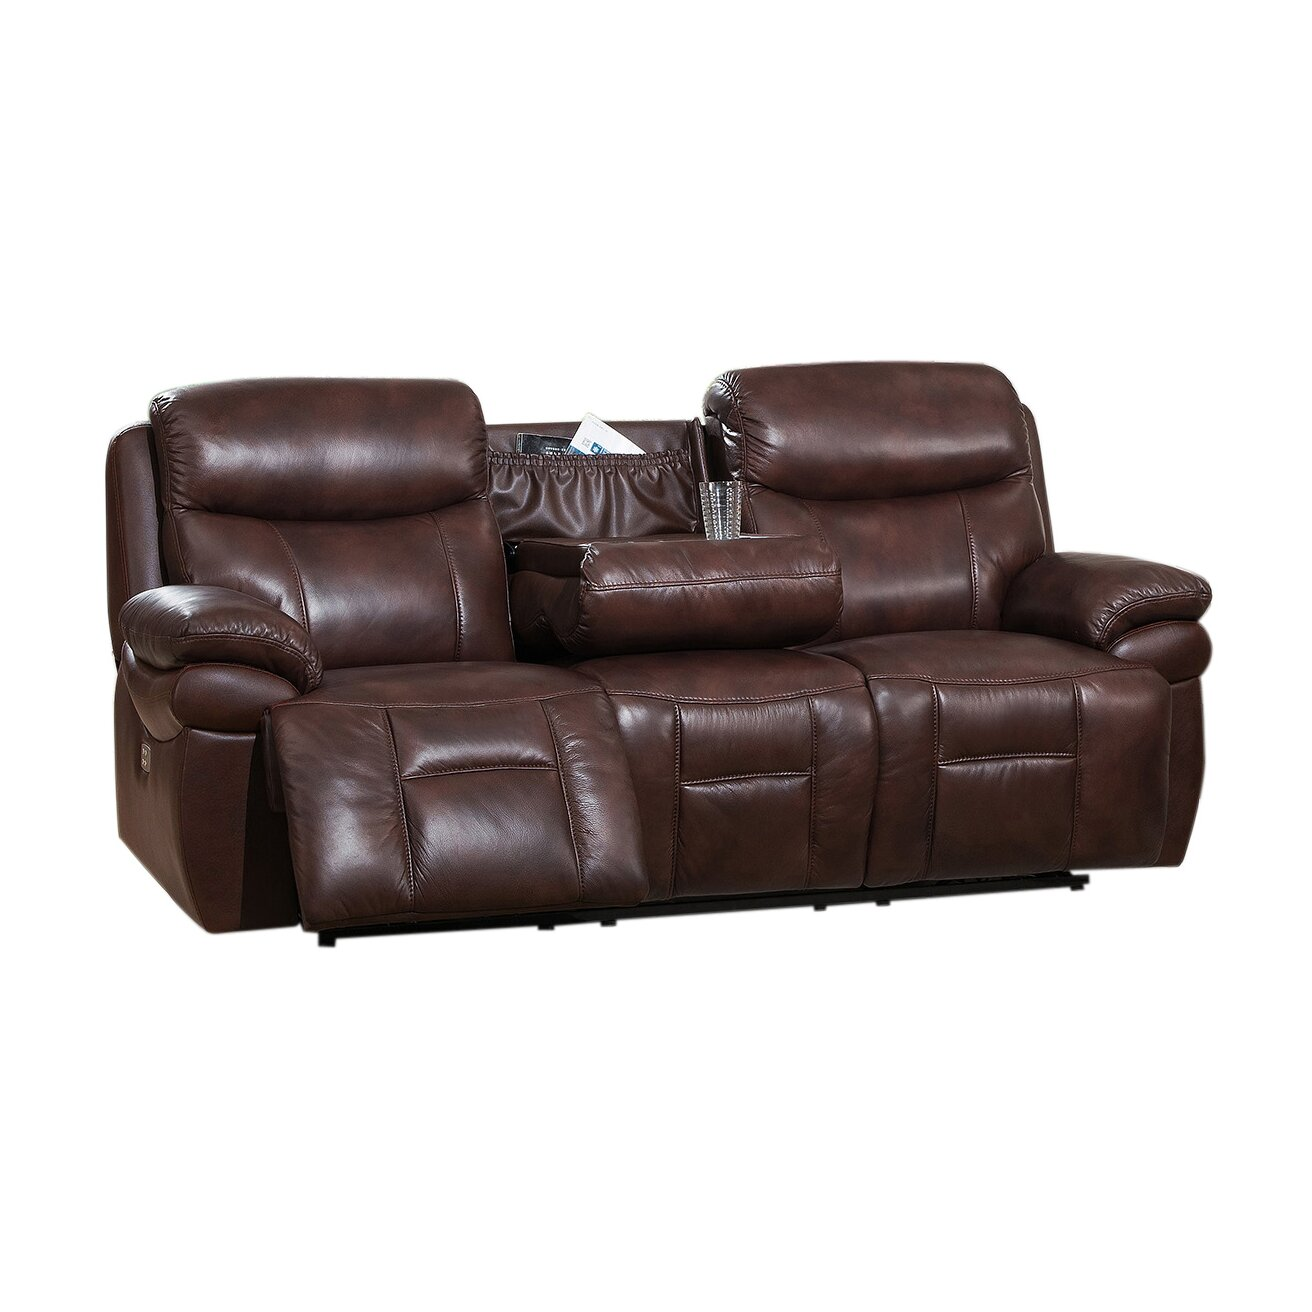 Amax sanford leather reclining sofa wayfair for Leather reclining sofa